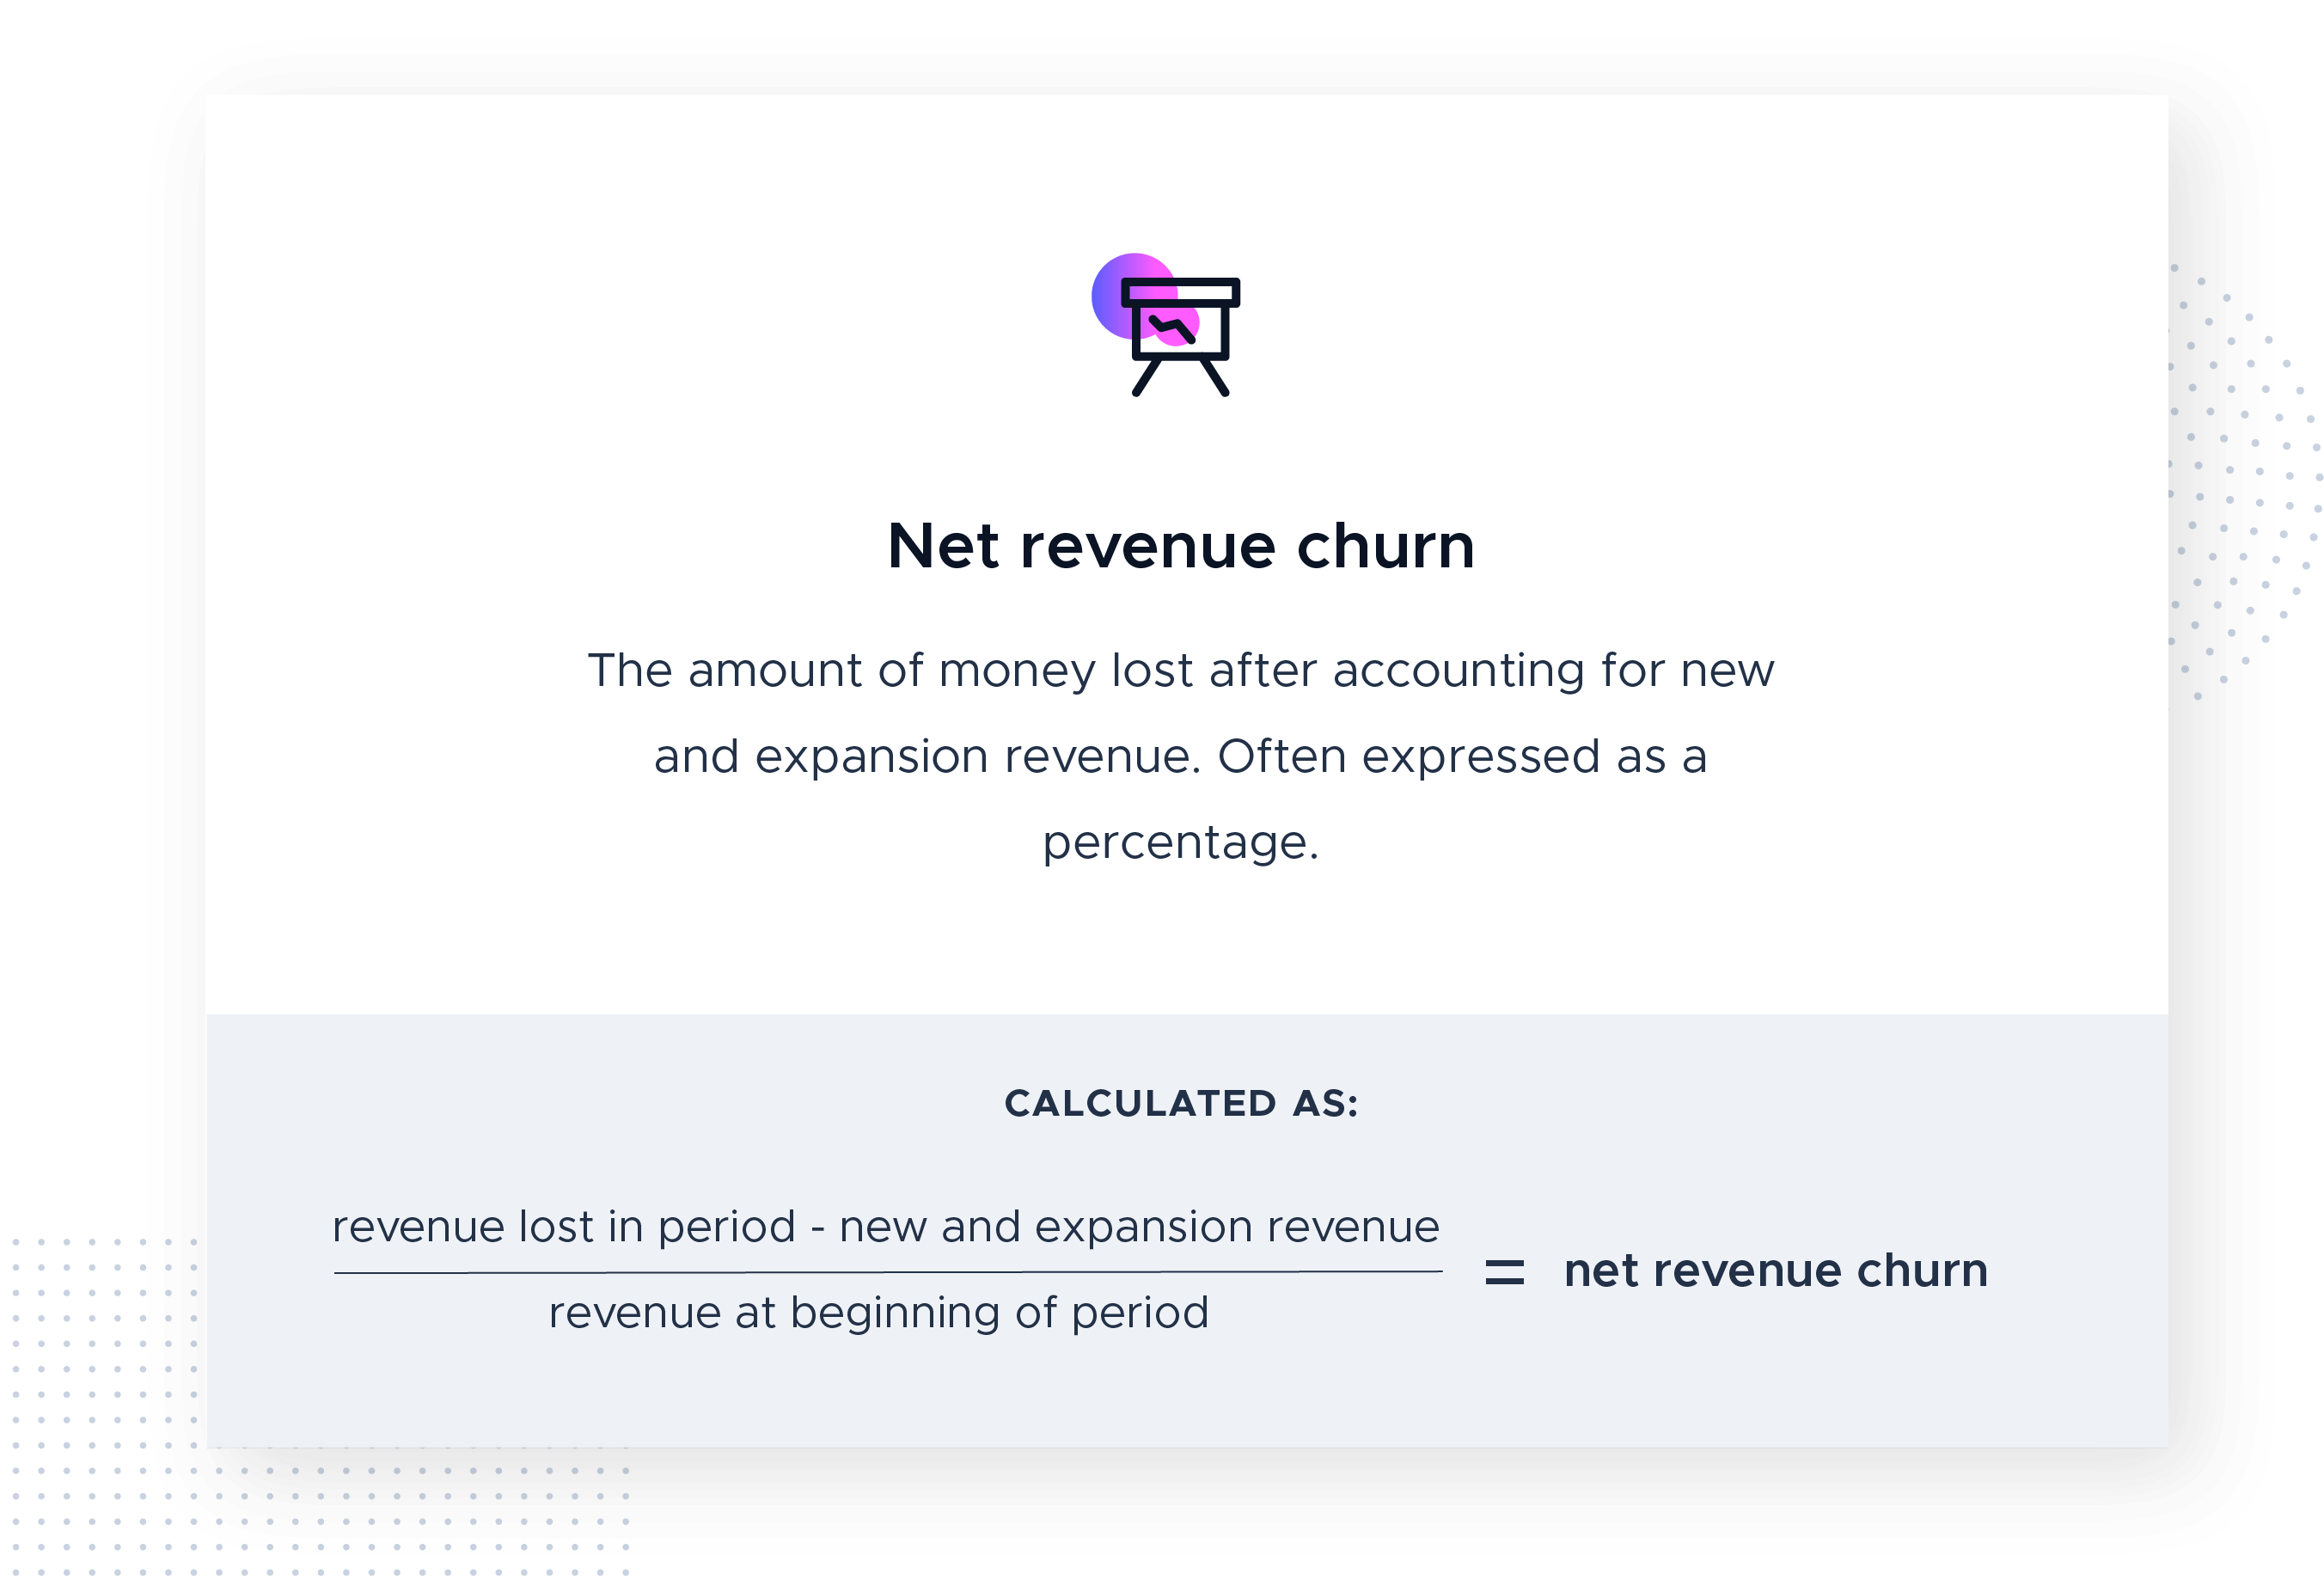 Net revenue churn definition with icon from the Product-Led Growth Collective. This image defines net revenue churn as the amount of money lost after accounting for new and expansion revenue. Often expressed as a percentage.  Includes an equation for net revenue churn: It's calculated as (revenue lost in period - new and expansion revenue) divided by revenue at beginning of period.